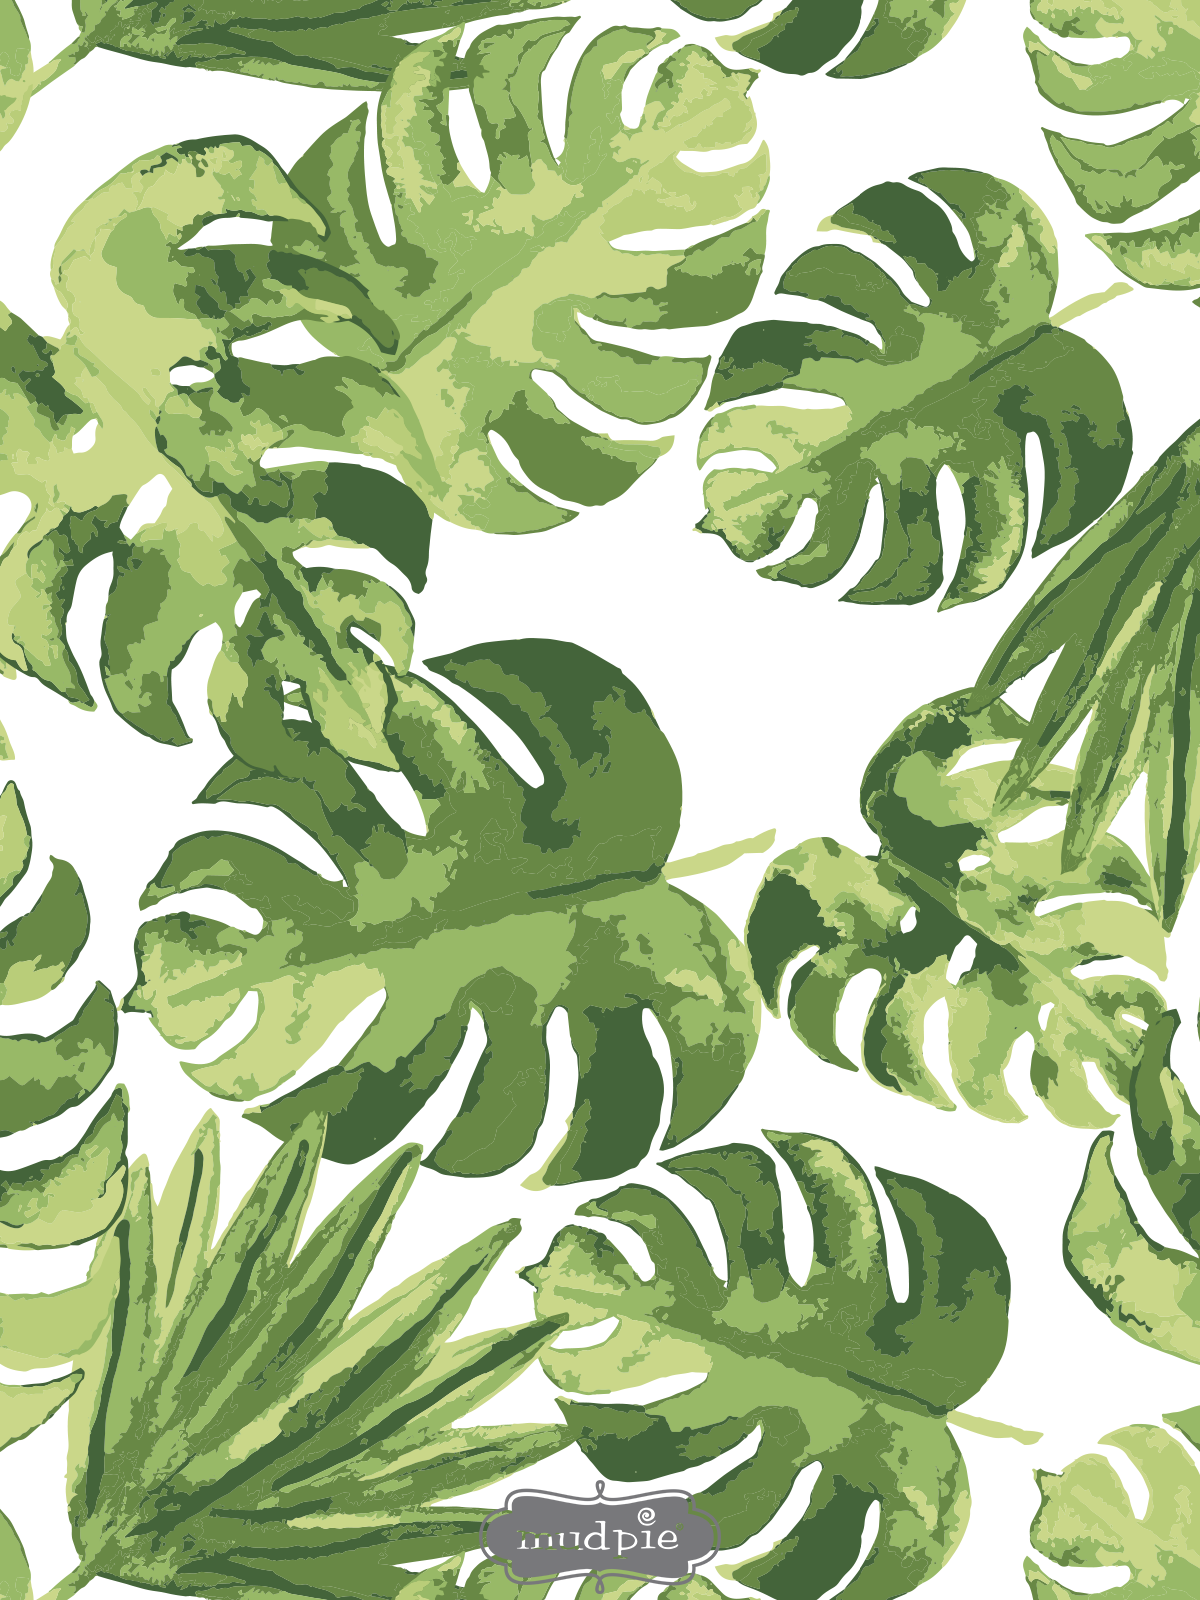 It's just an image of Current Grabbing Leaf Drawing